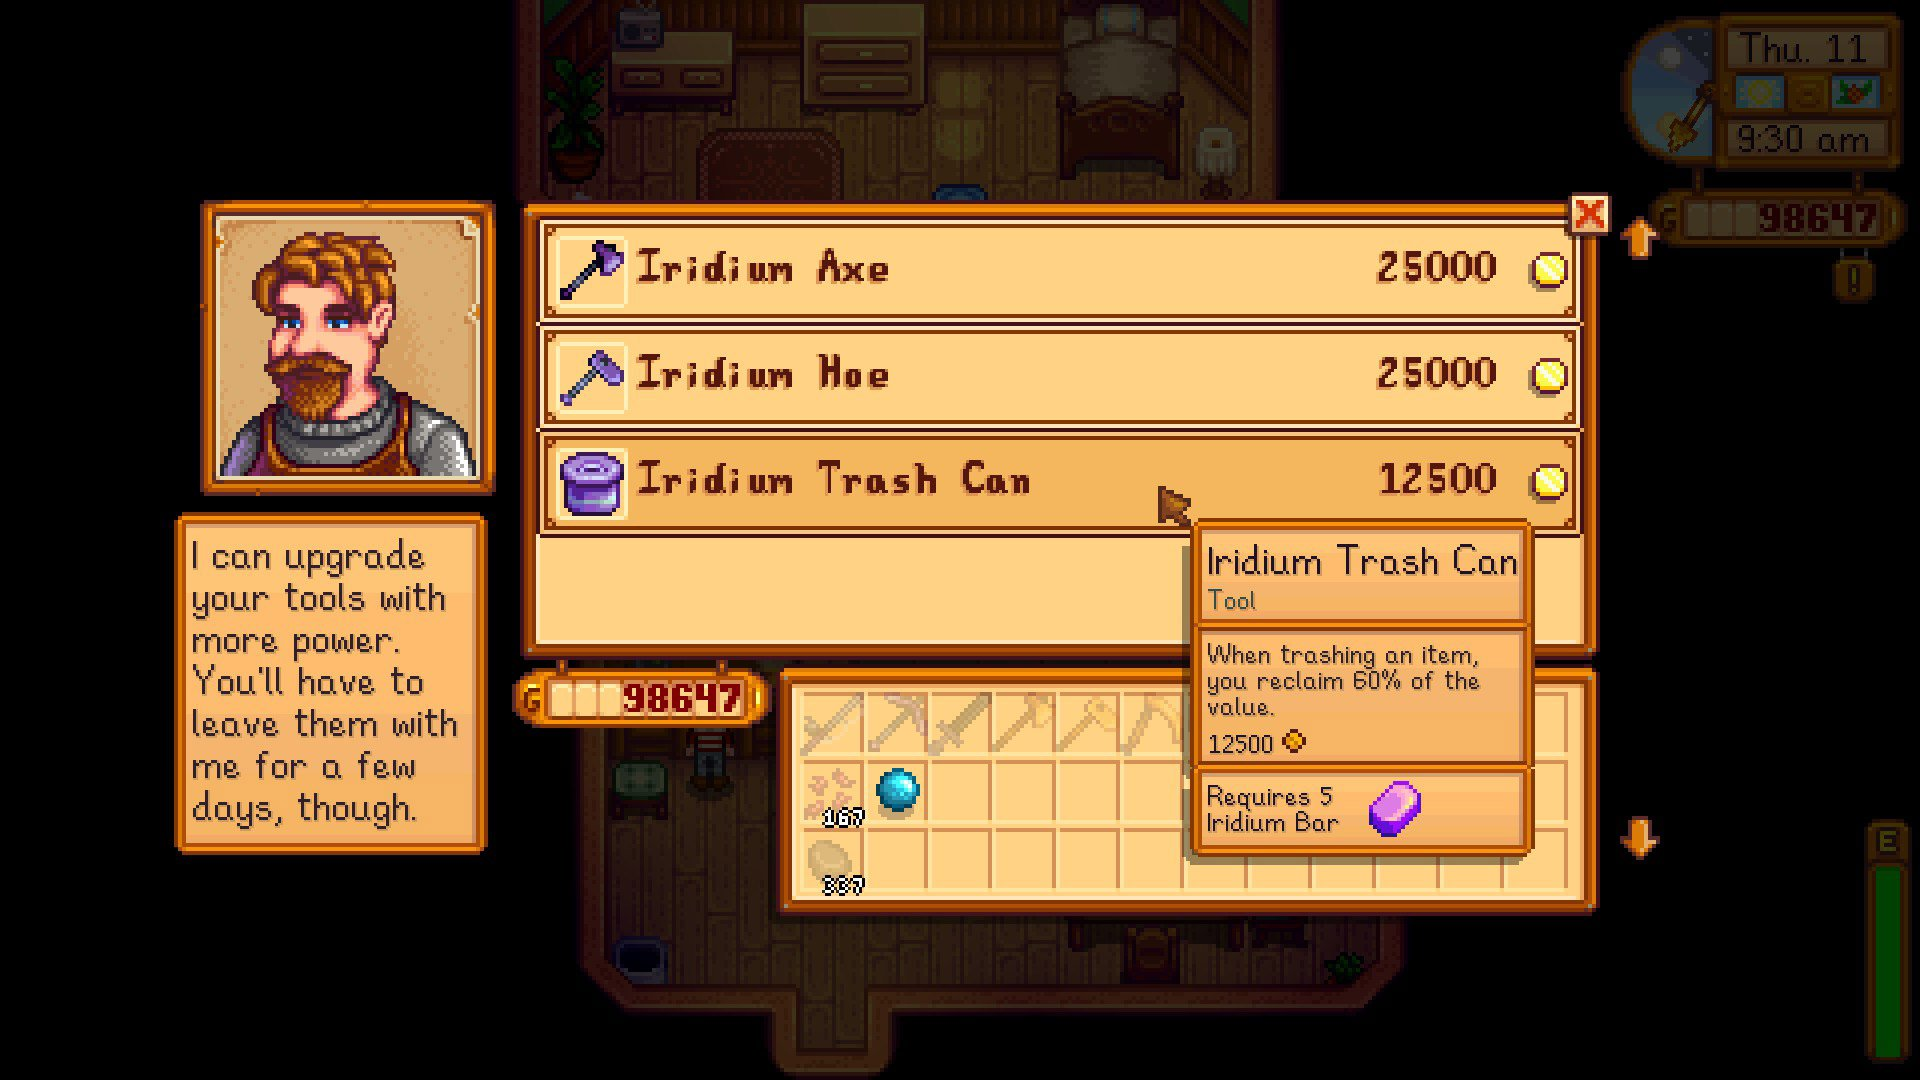 Don't forget to upgrade your trash can in Stardew Valley screenshot